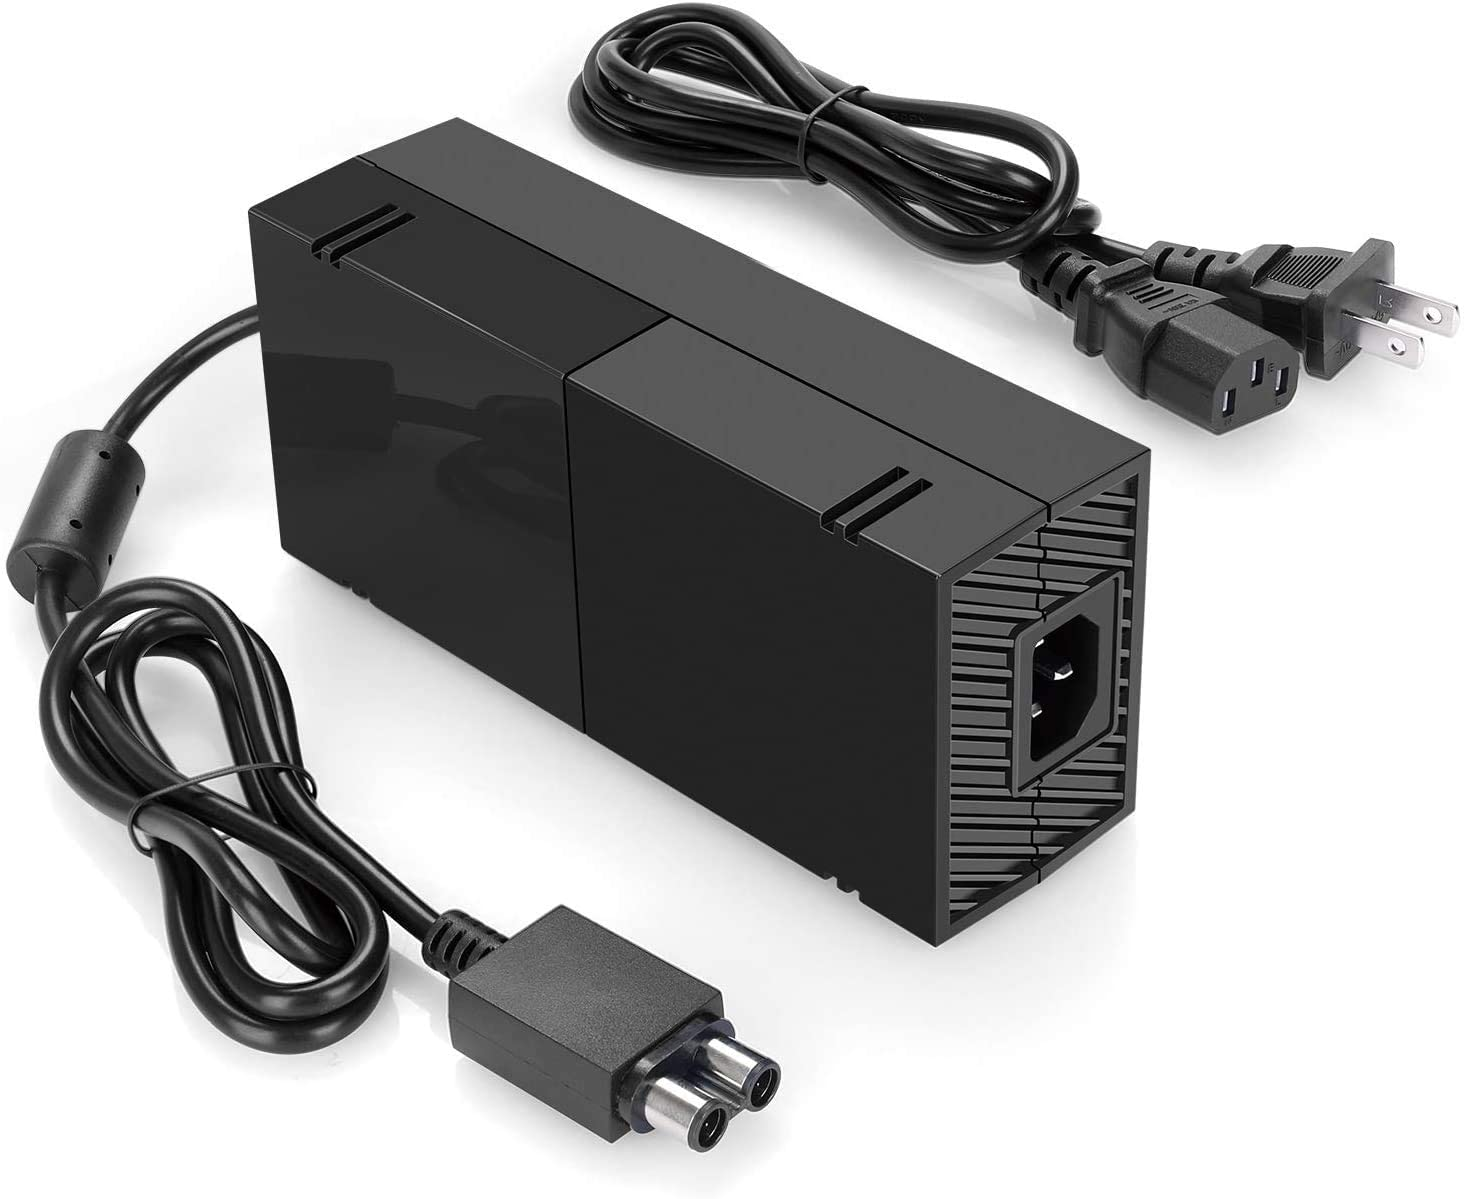 Goodgo Power Supply Brick for Xbox One,AC Adapter Cable Replacement Kit for Xbox One Console with US Plug Charger Cord Replacement 100-240V 220W